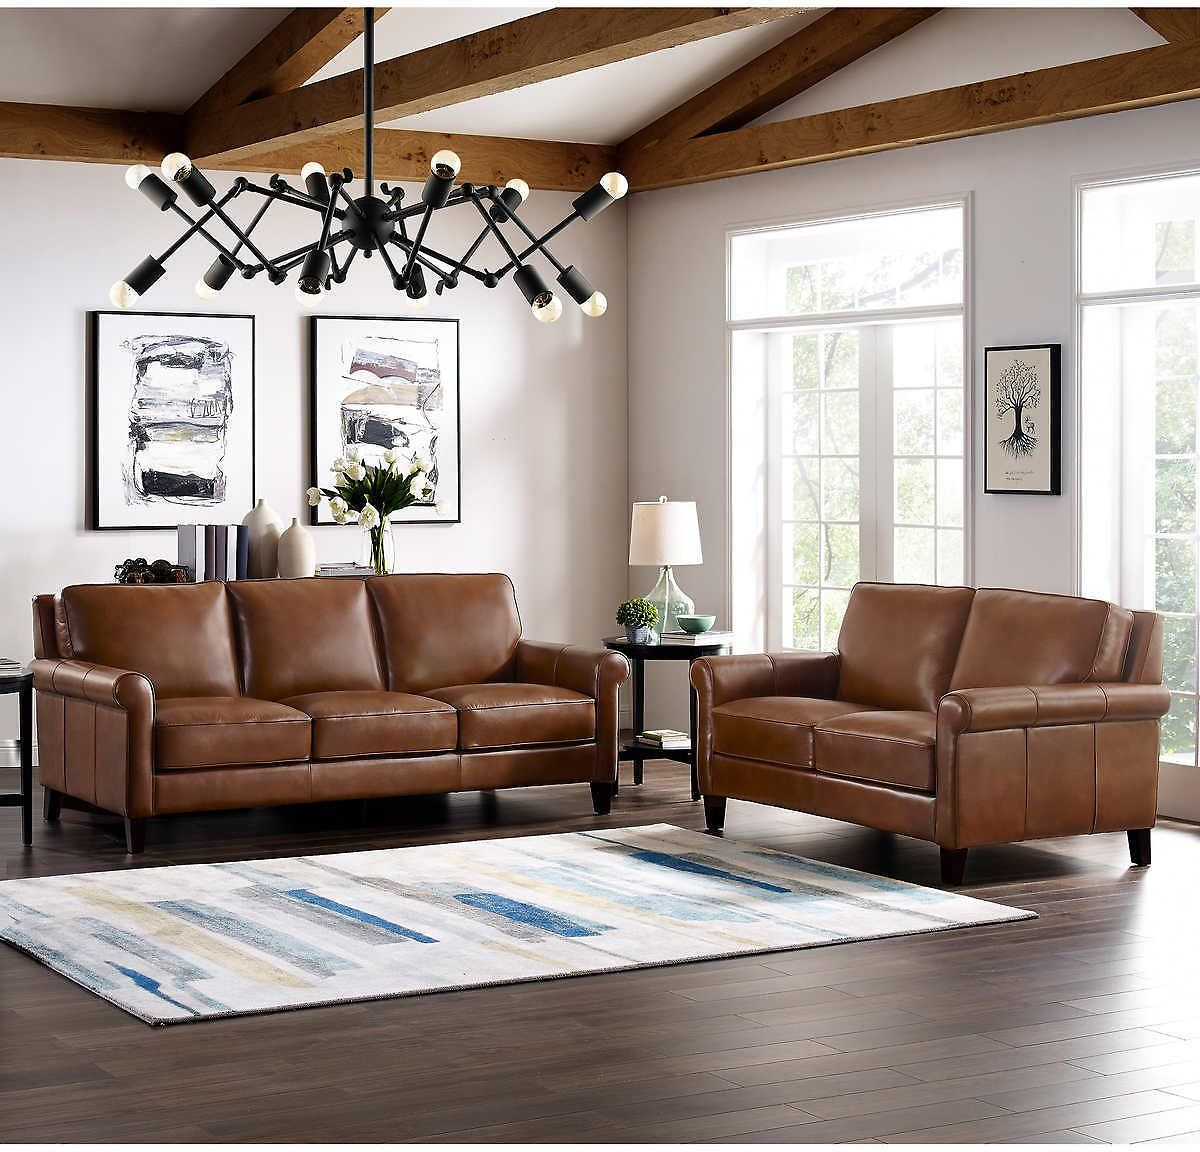 Up To 1 600 Off Costco Furniture Event Costco Dealsplus In 2020 Leather Sofa And Loveseat Top Grain Leather Sofa Sofa And Loveseat Set